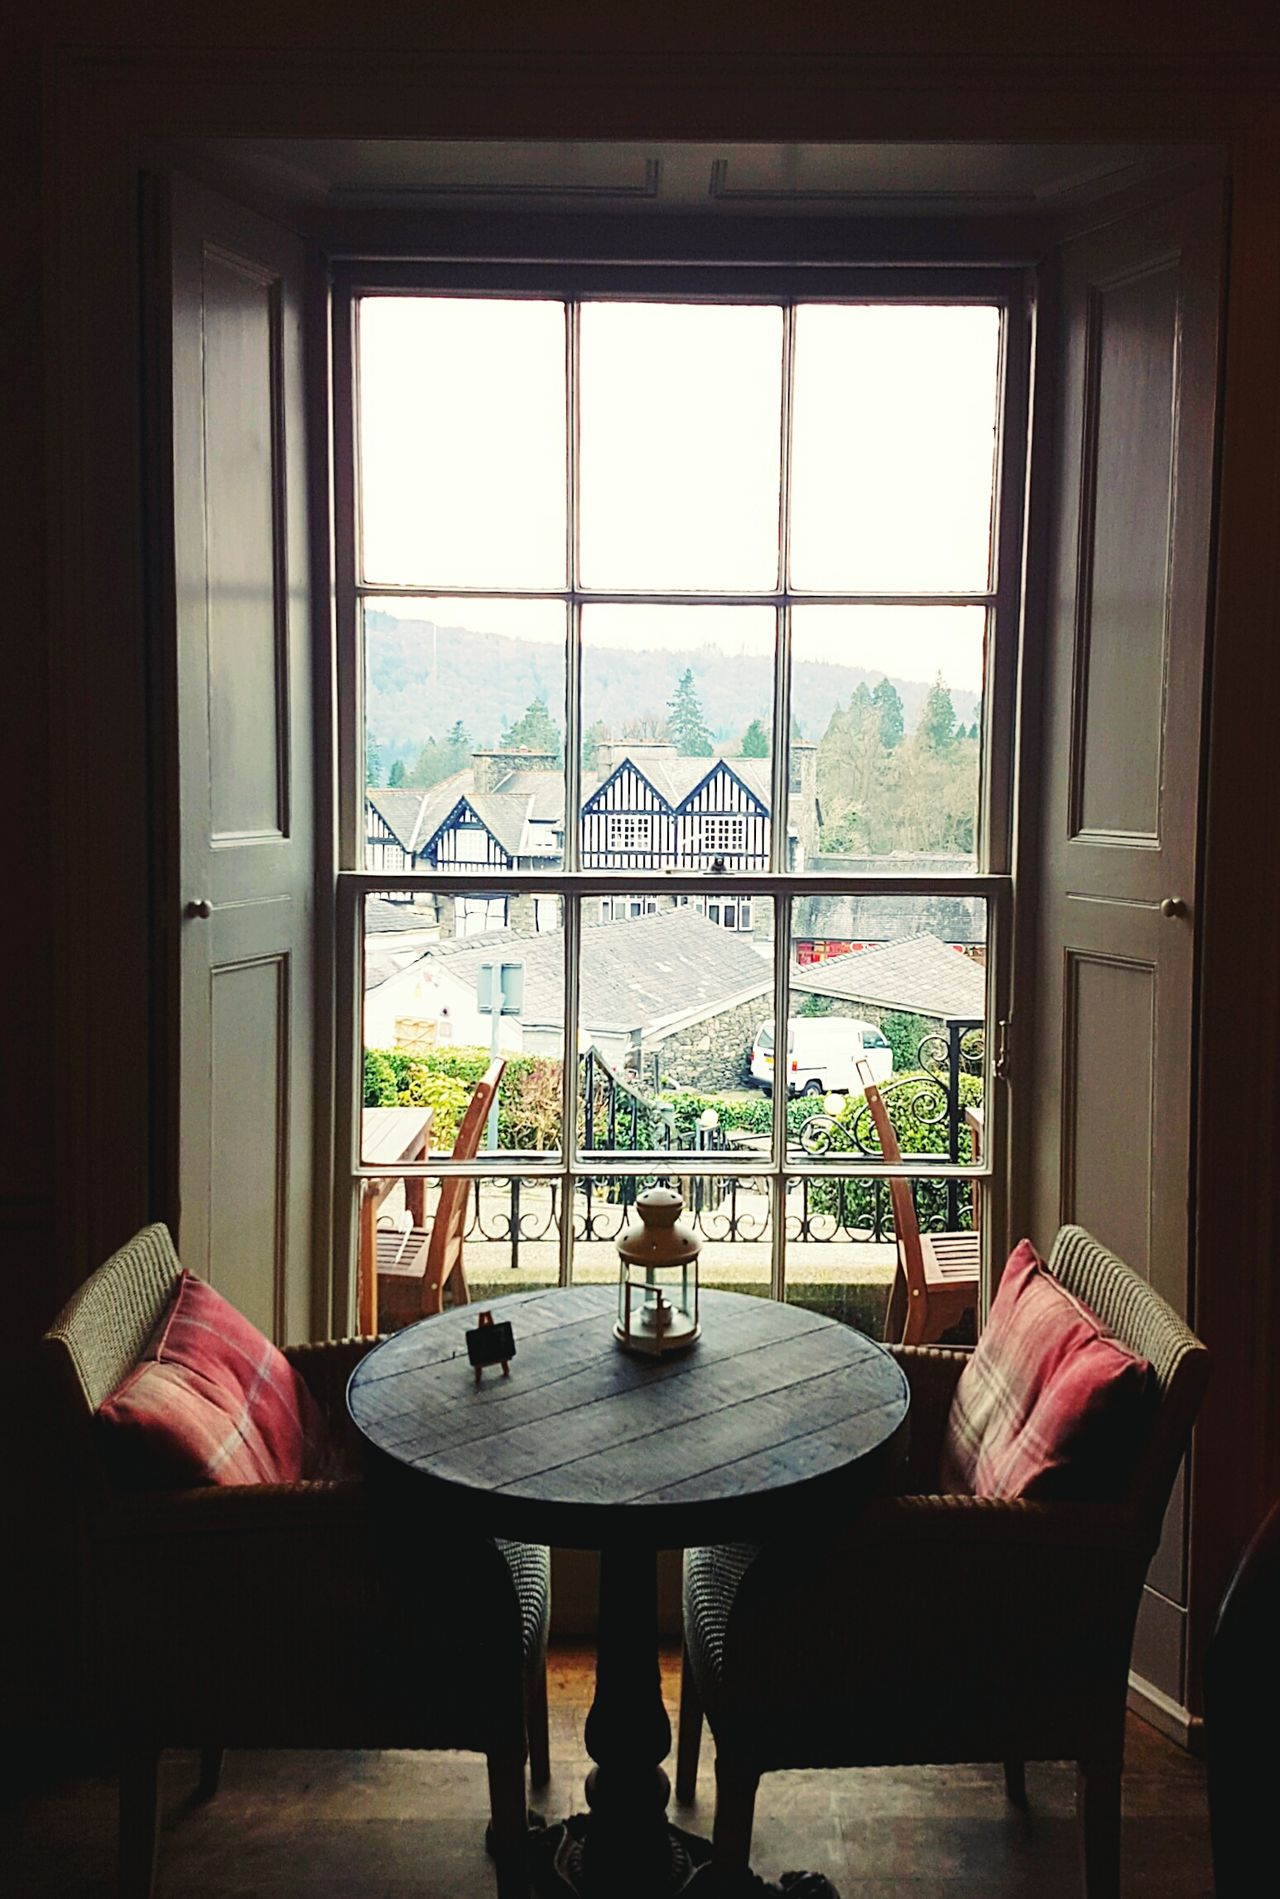 Window Indoors  No People Home Interior Luxury Day Dining Table Chair Table Lake District Dining Out Break Vacations Lake View Lake District National Park Lake District Photography Windermere Bowness